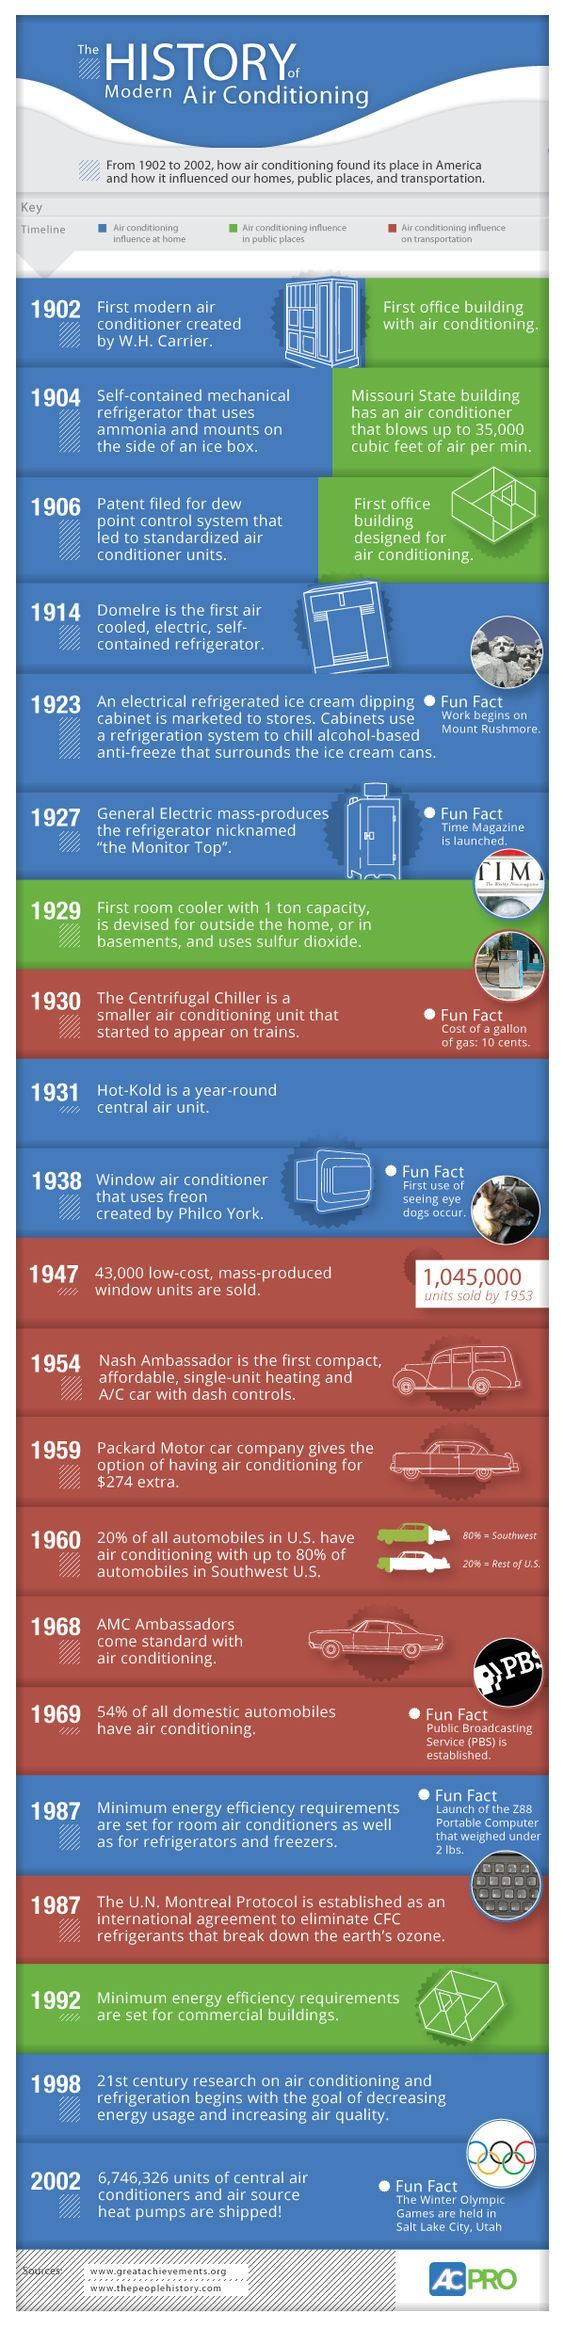 The History of Modern Air Conditioning (infographic)